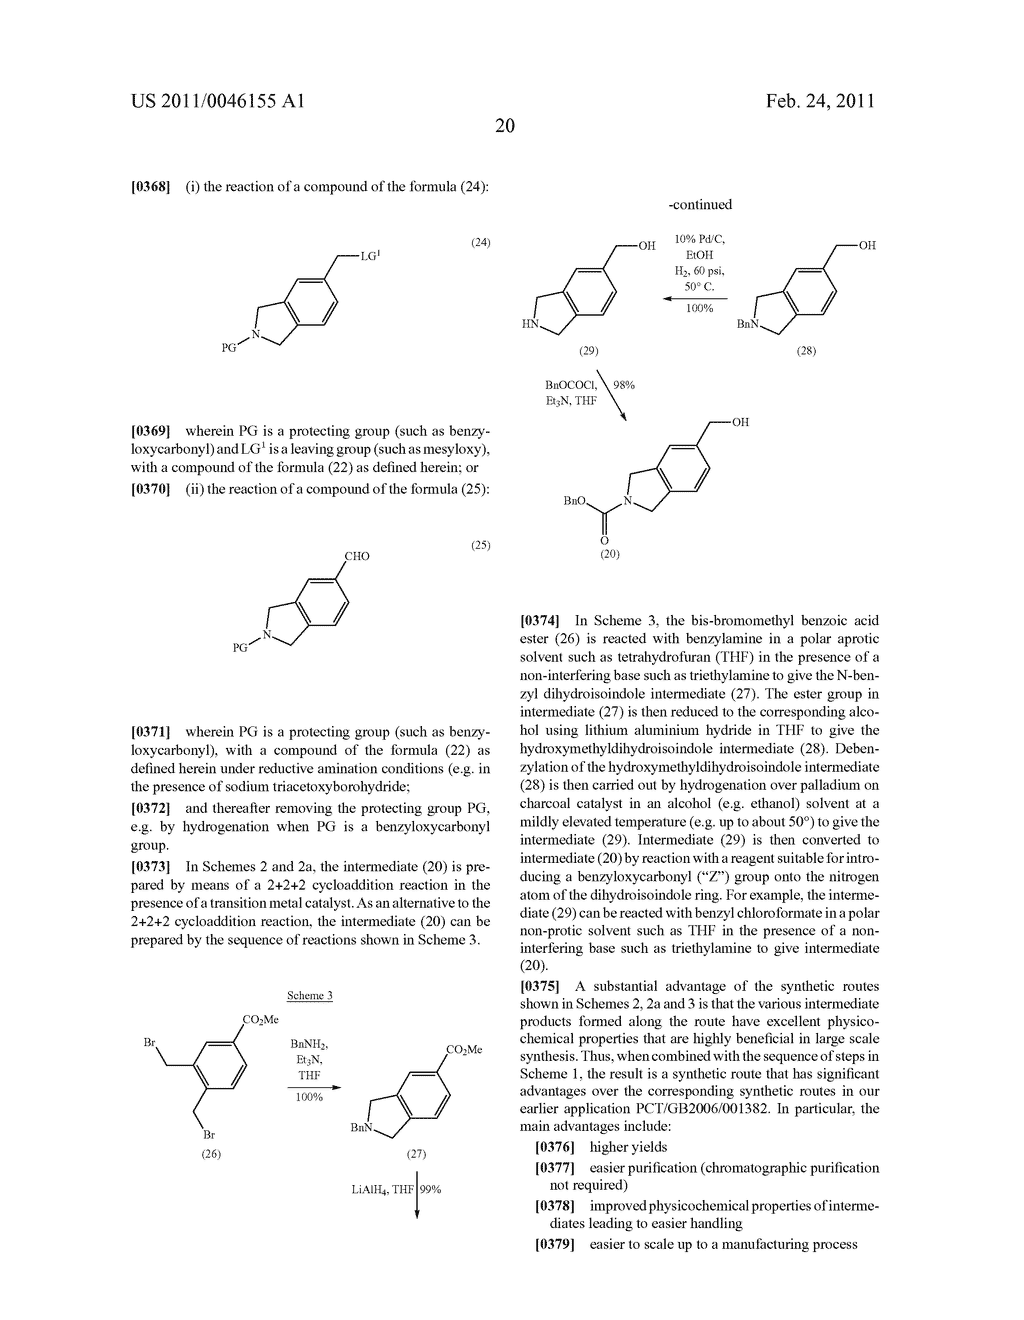 HYDROBENZAMIDE DERIVATIVES AS INHIBITORS OF HSP90 - diagram, schematic, and image 33